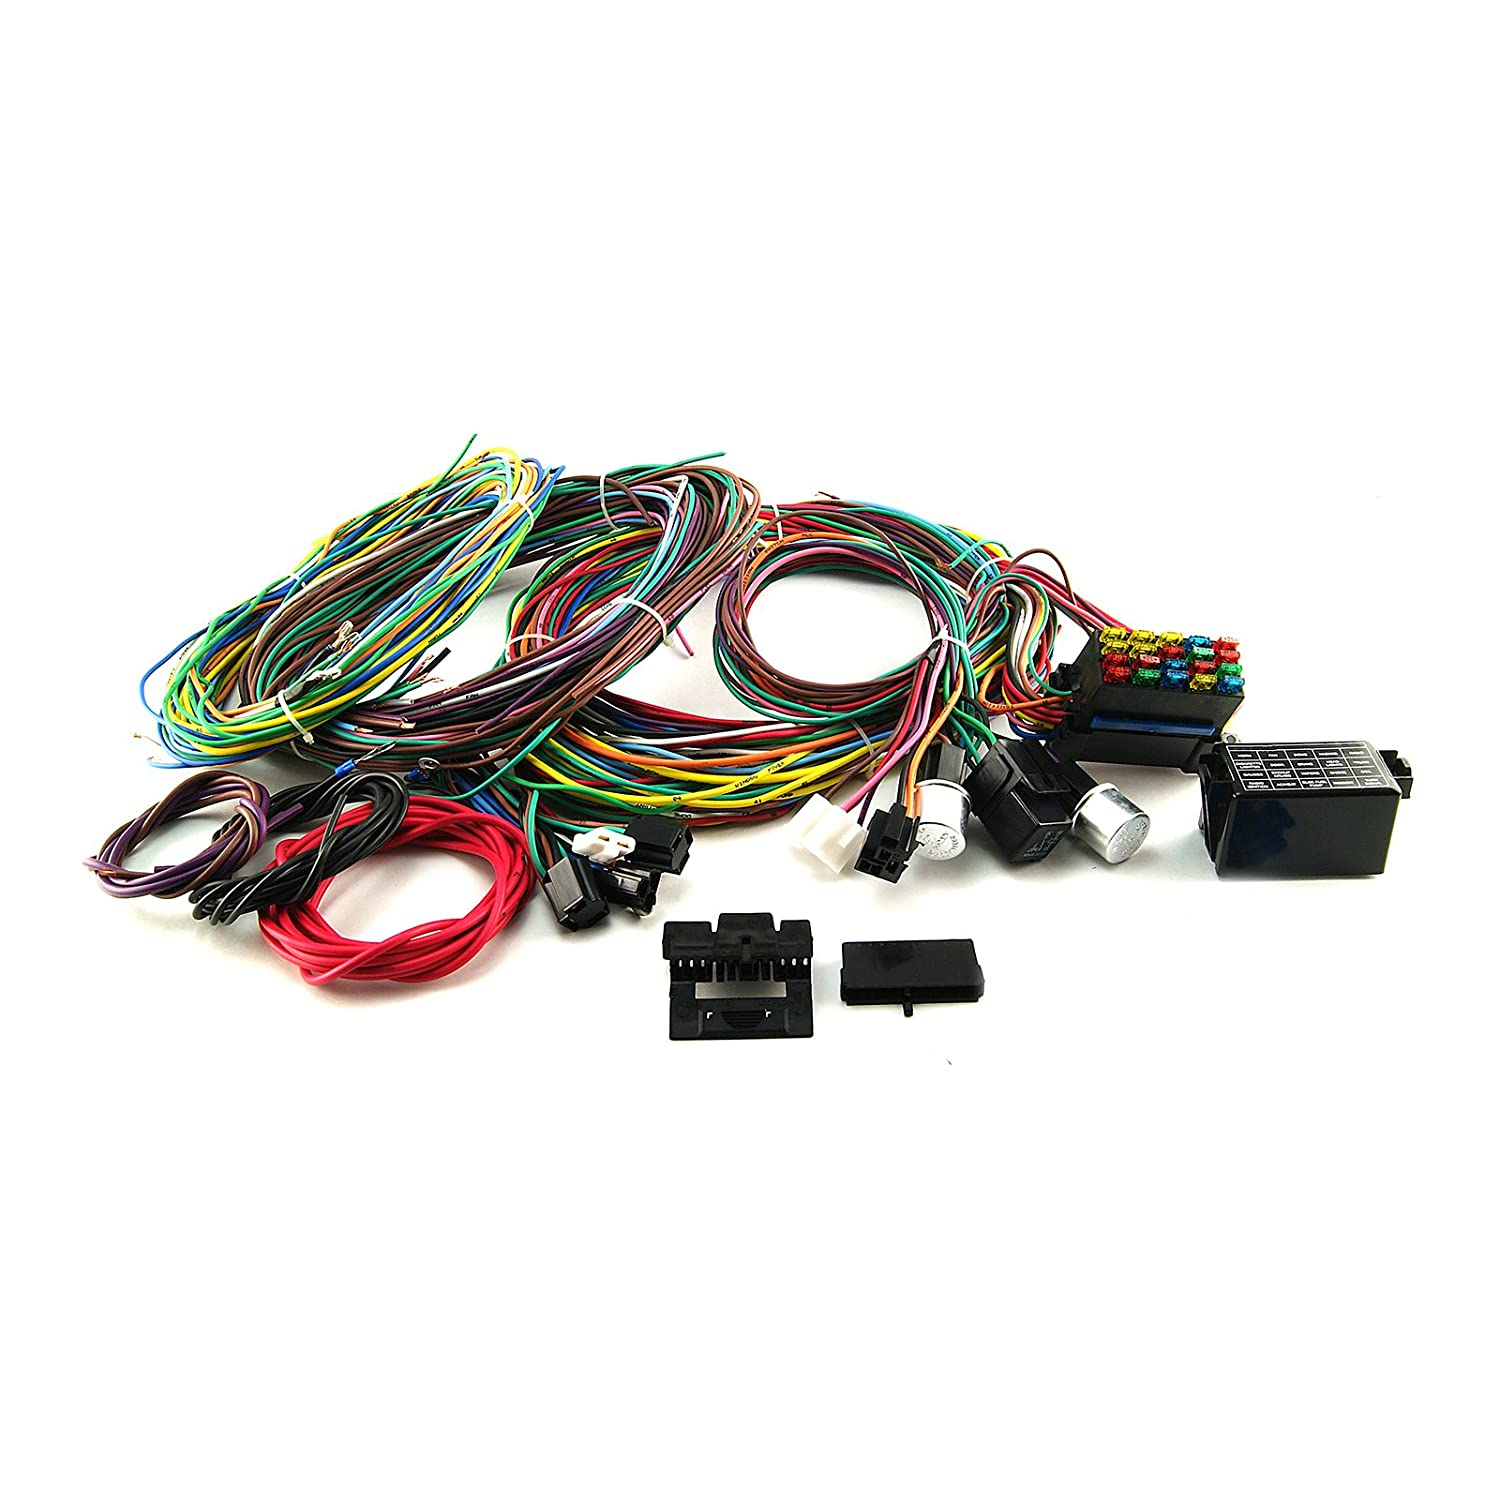 Amazon.com: Procomp Electronics PCE368.1001 Universal 20 Circuit Wiring  Harness Kit Street Rod Hot Rod Race Car: Automotive